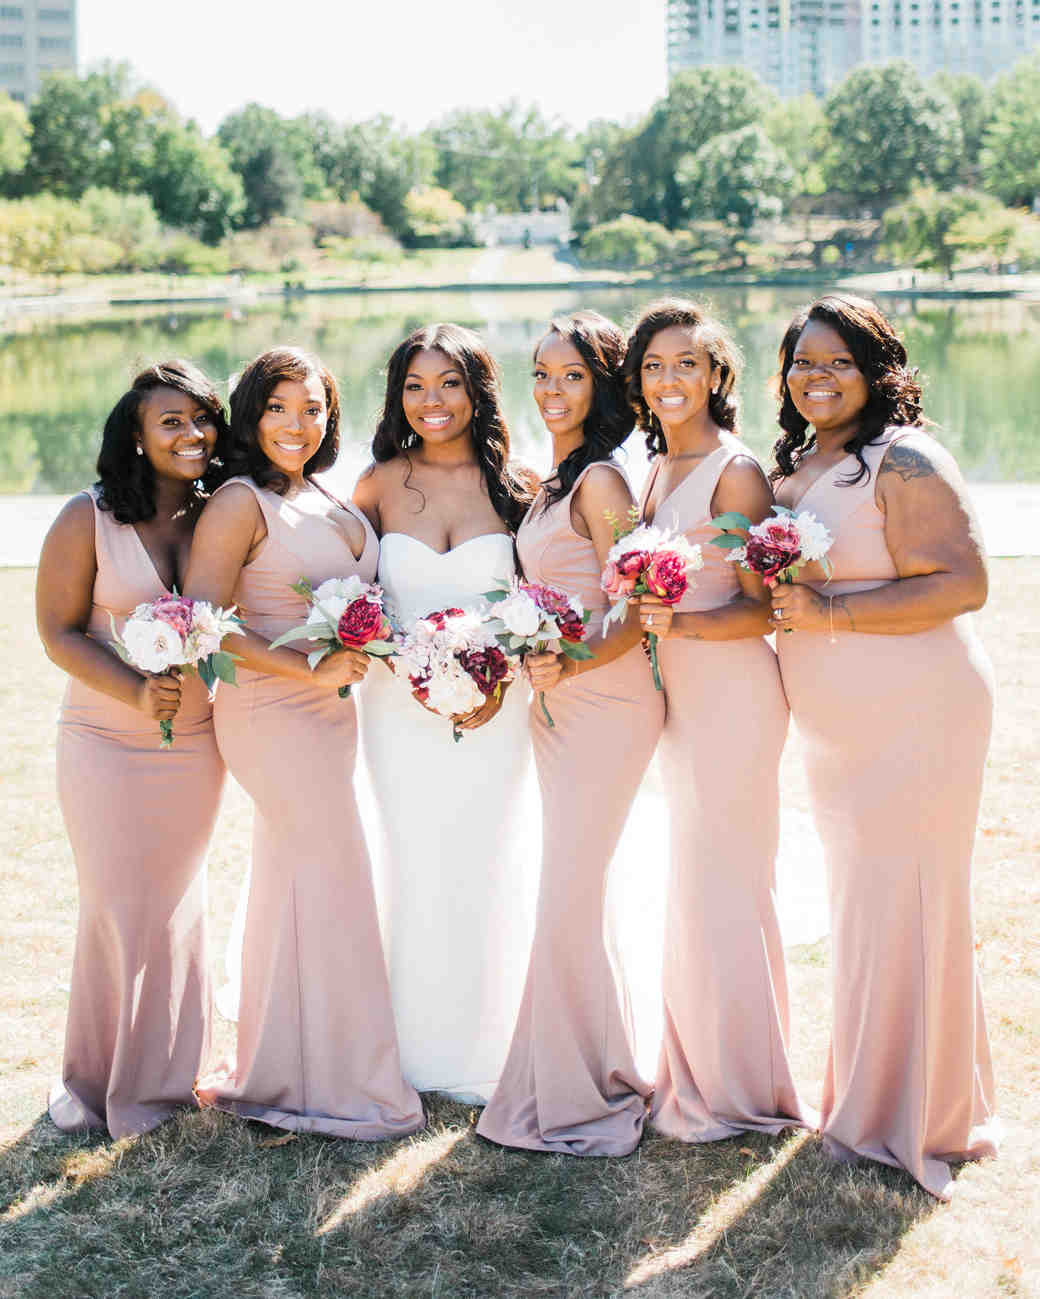 shanice & stephen wedding bridesmaids